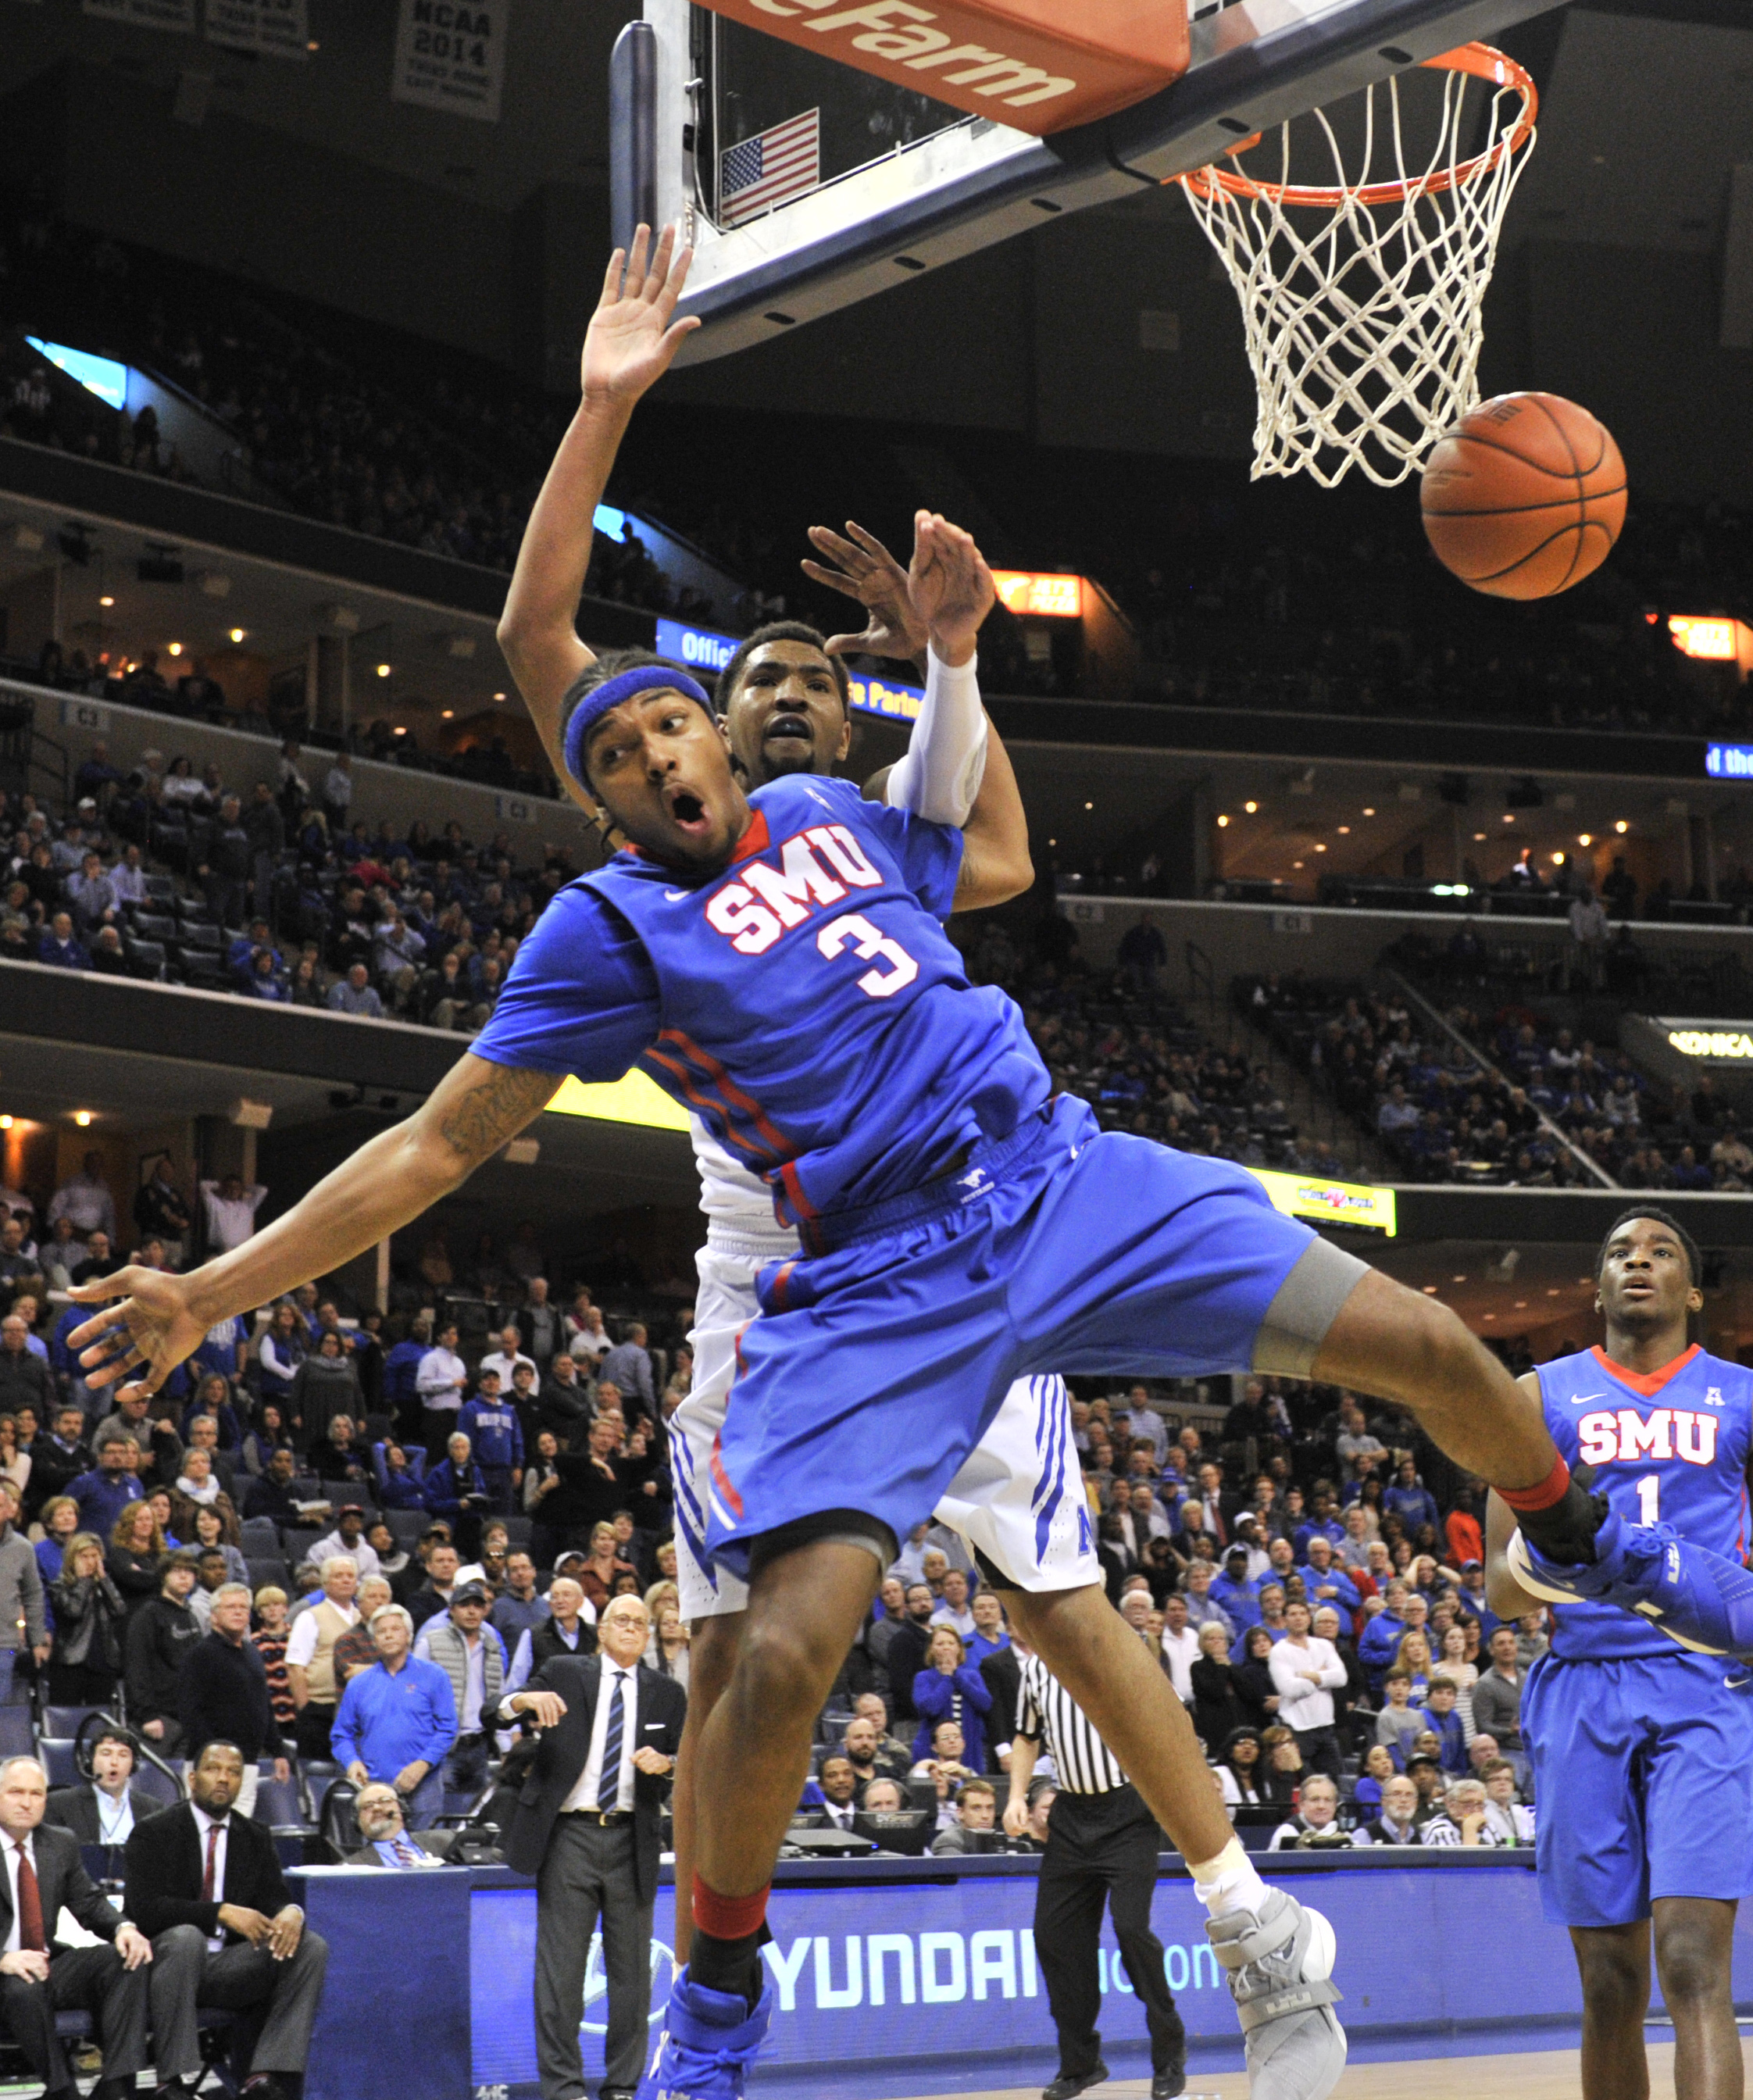 SMU guard Sterling Brown (3) is fouled by Memphis forward Dedric Lawson in the second half of an NCAA college basketball game Thursday, Feb. 25, 2016, in Memphis, Tenn. (AP Photo/Brandon Dill)